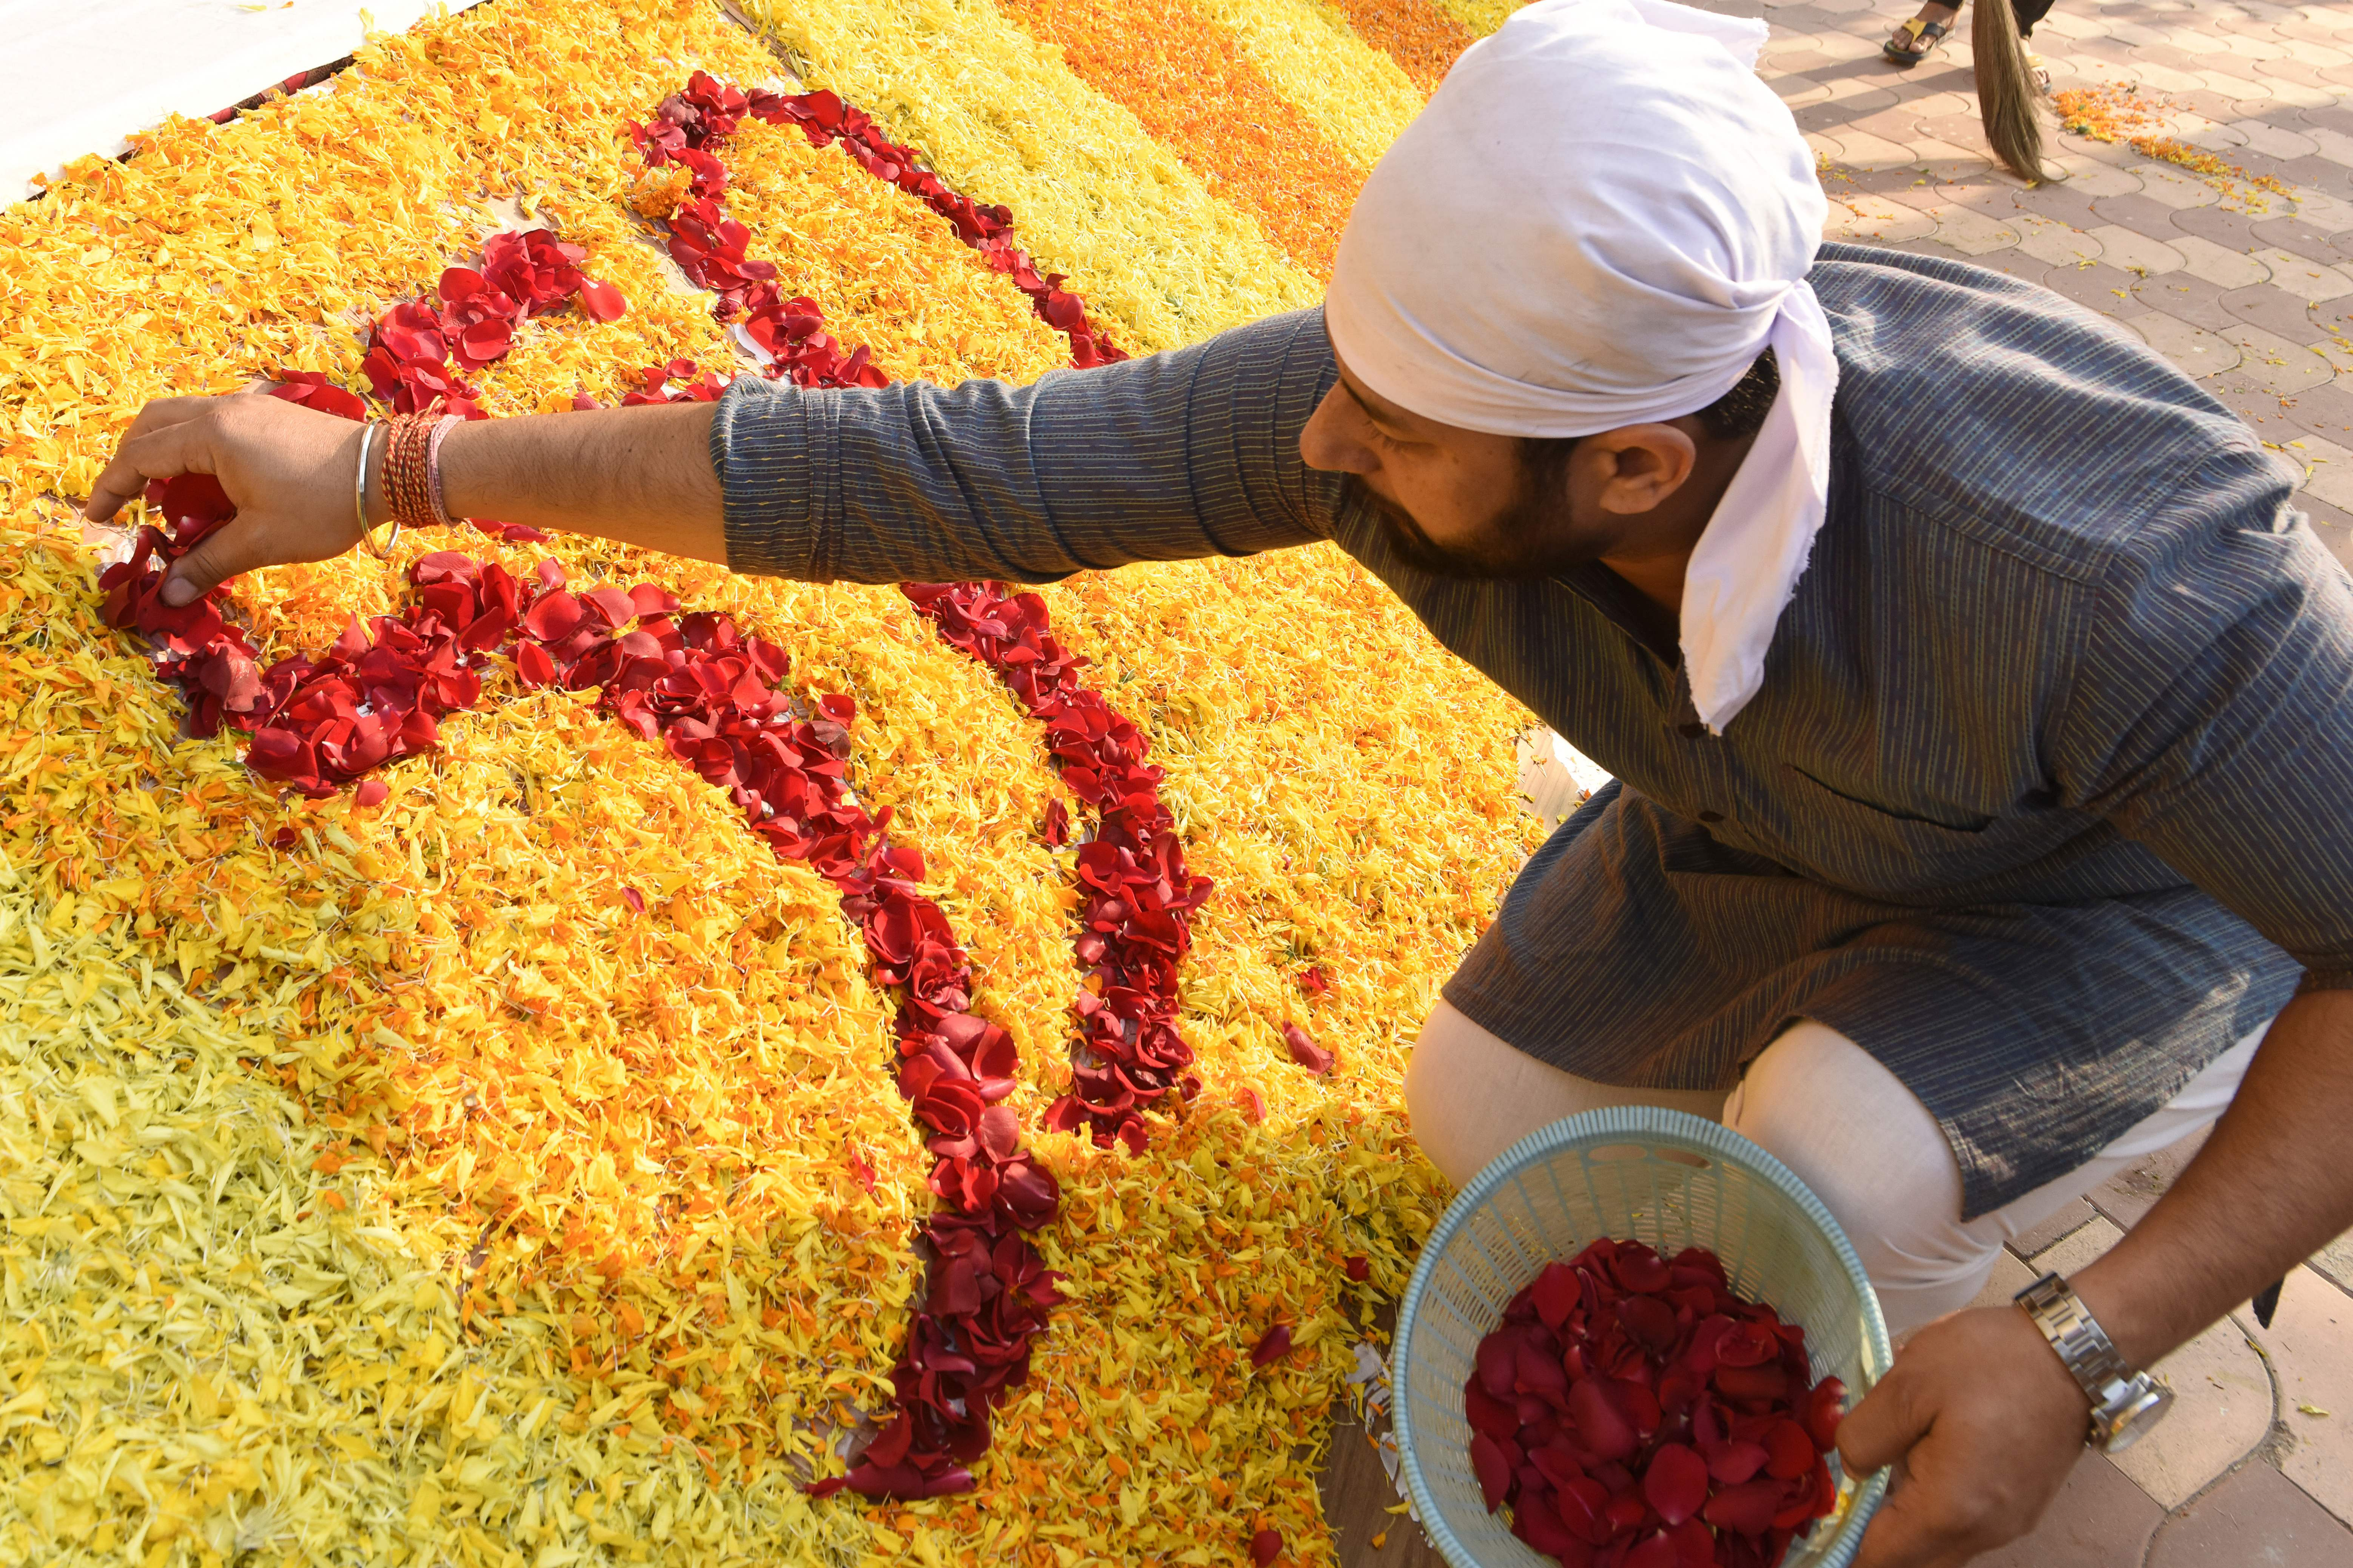 A Sikh devotee uses flower petals for decorations during a religious function ahead of 550th birth anniversary of Guru Nanak Dev ji, in Amritsar on November 10, 2019. (Photo by NARINDER NANU / AFP)